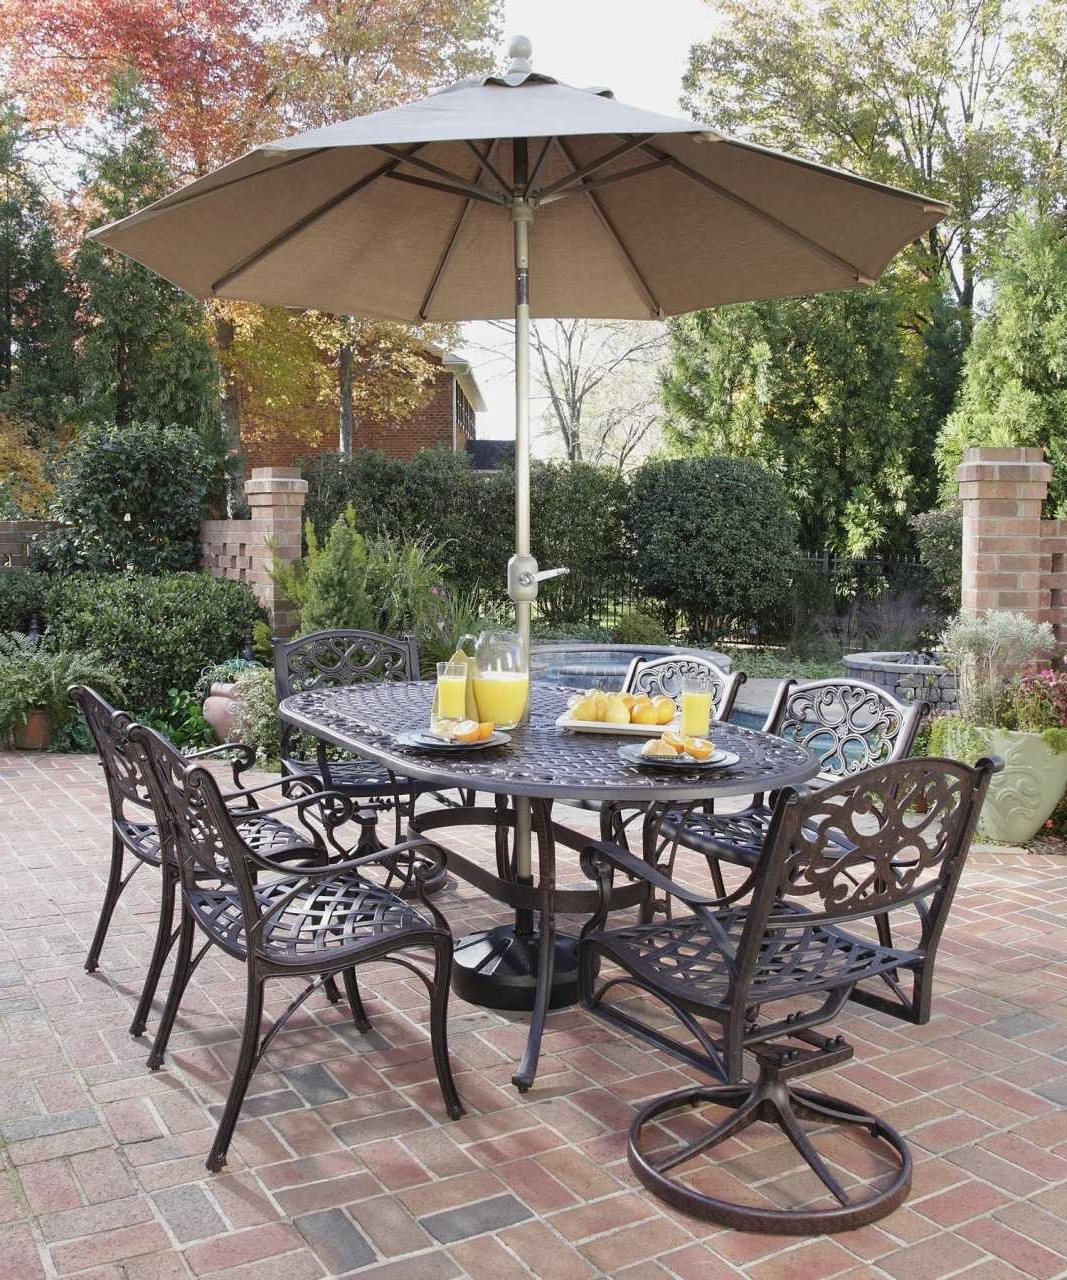 Patio Table And Chairs With Umbrellas With Regard To Trendy Fascinating Patio Table Sets With Umbrella Trends Including Cheap (Gallery 8 of 20)